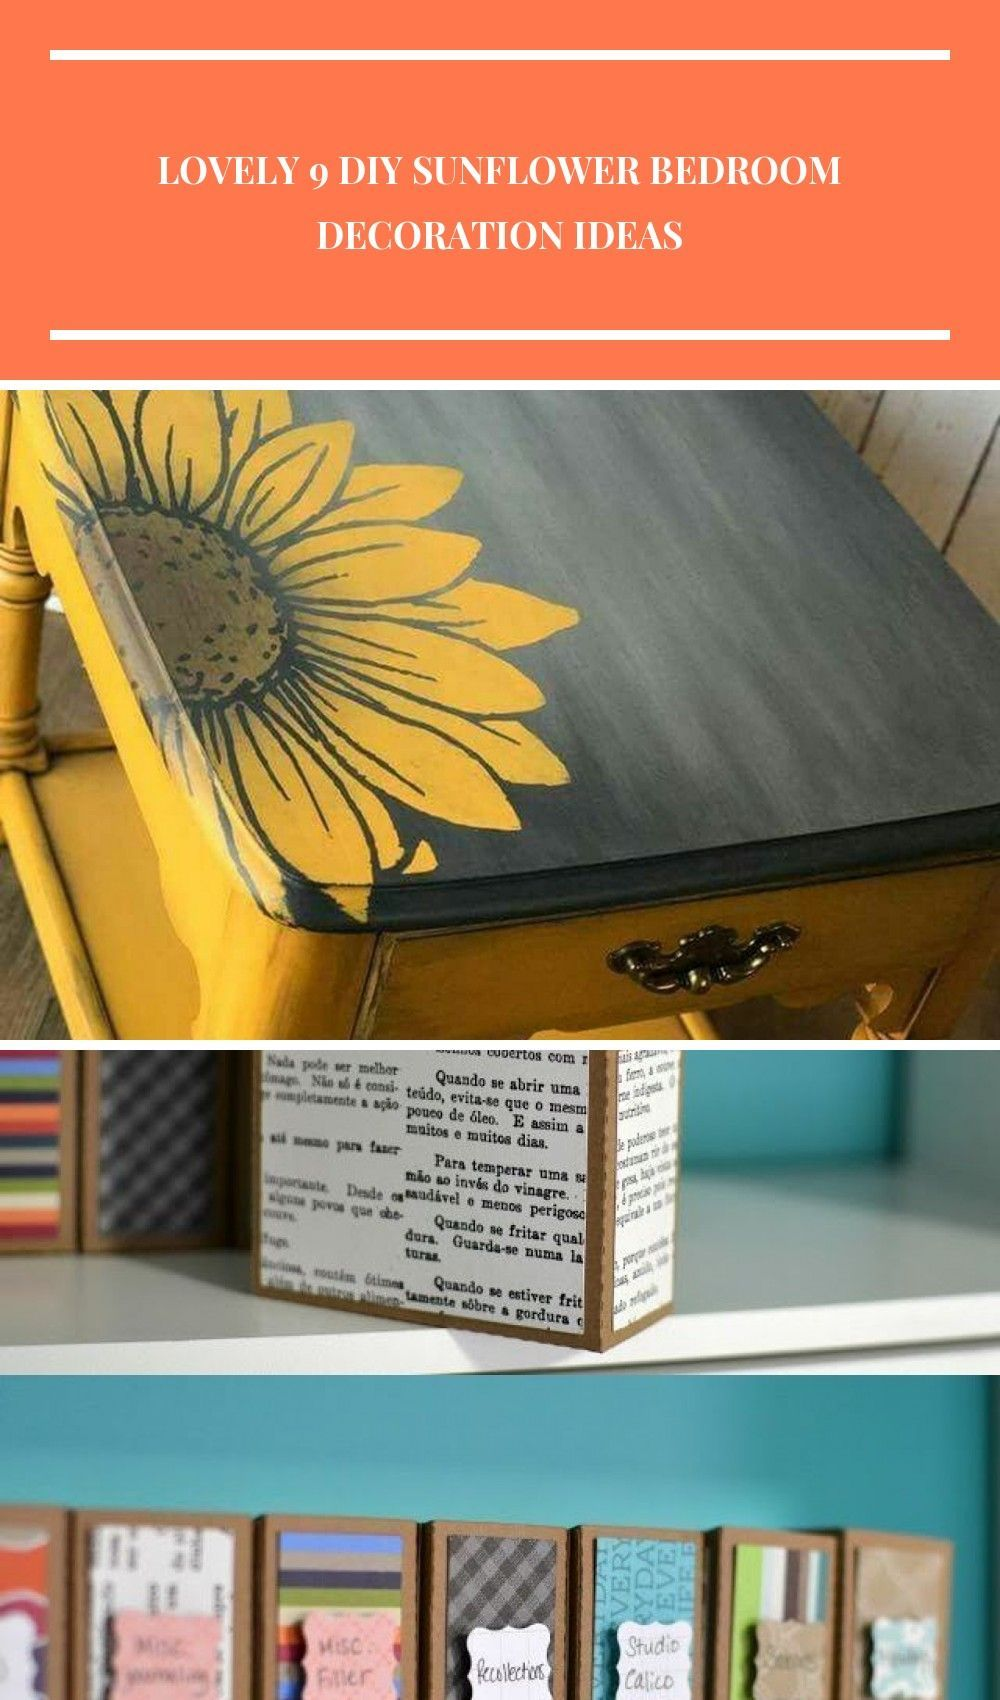 diy bedroom decor Lovely 9 DIY Sunflower Bedroom Decoration Ideas #sunflowerbedroomideas diy bedroom decor Lovely 9 DIY Sunflower Bedroom Decoration Ideas #sunflowerbedroomideas